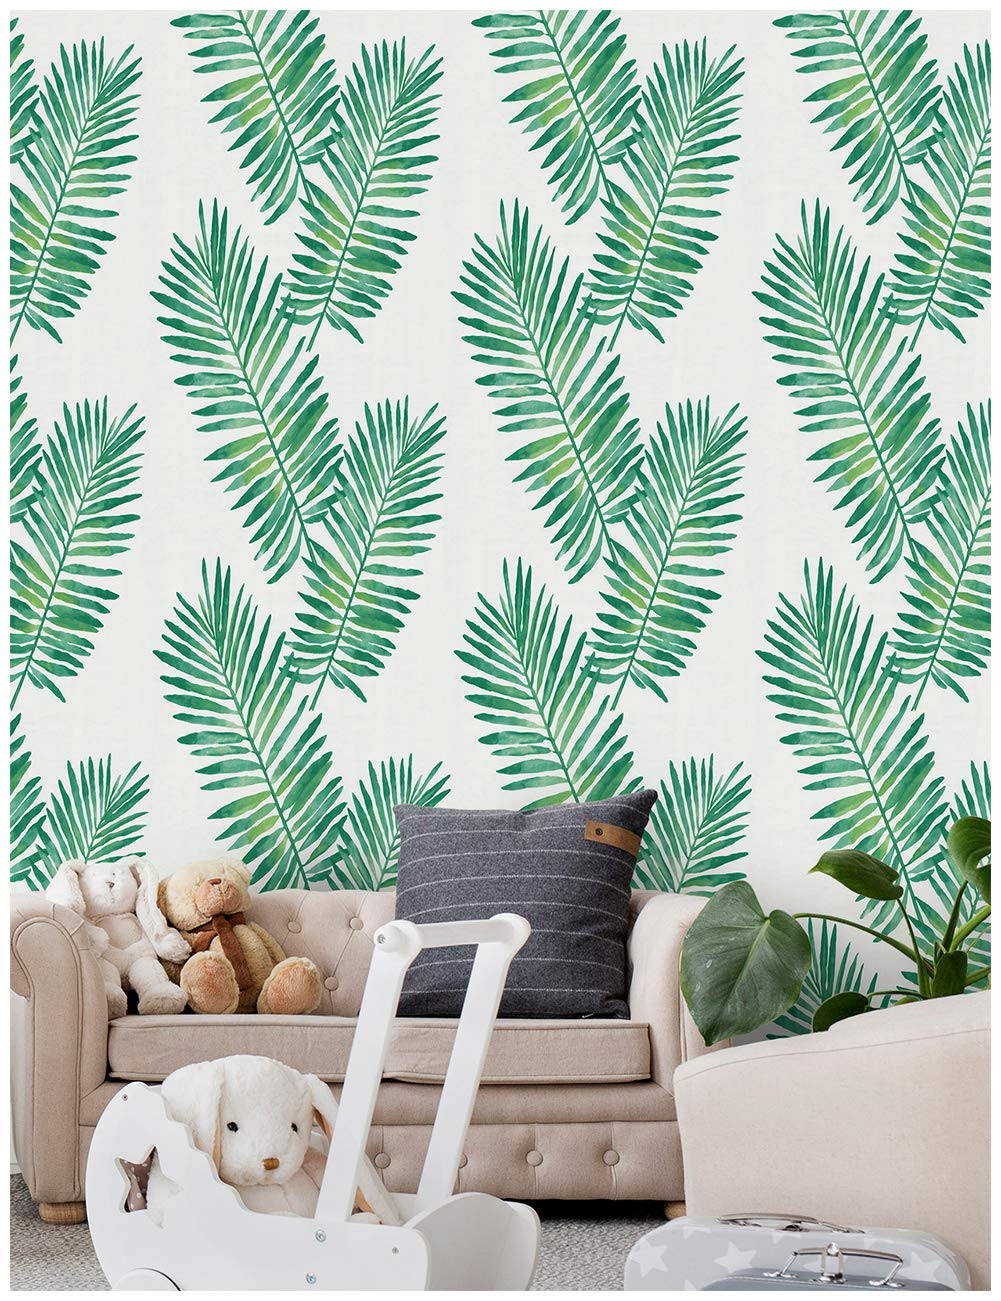 Tropical Palm Peel and Stick Wallpaper Removable Green White Vinyl Self Adhesive